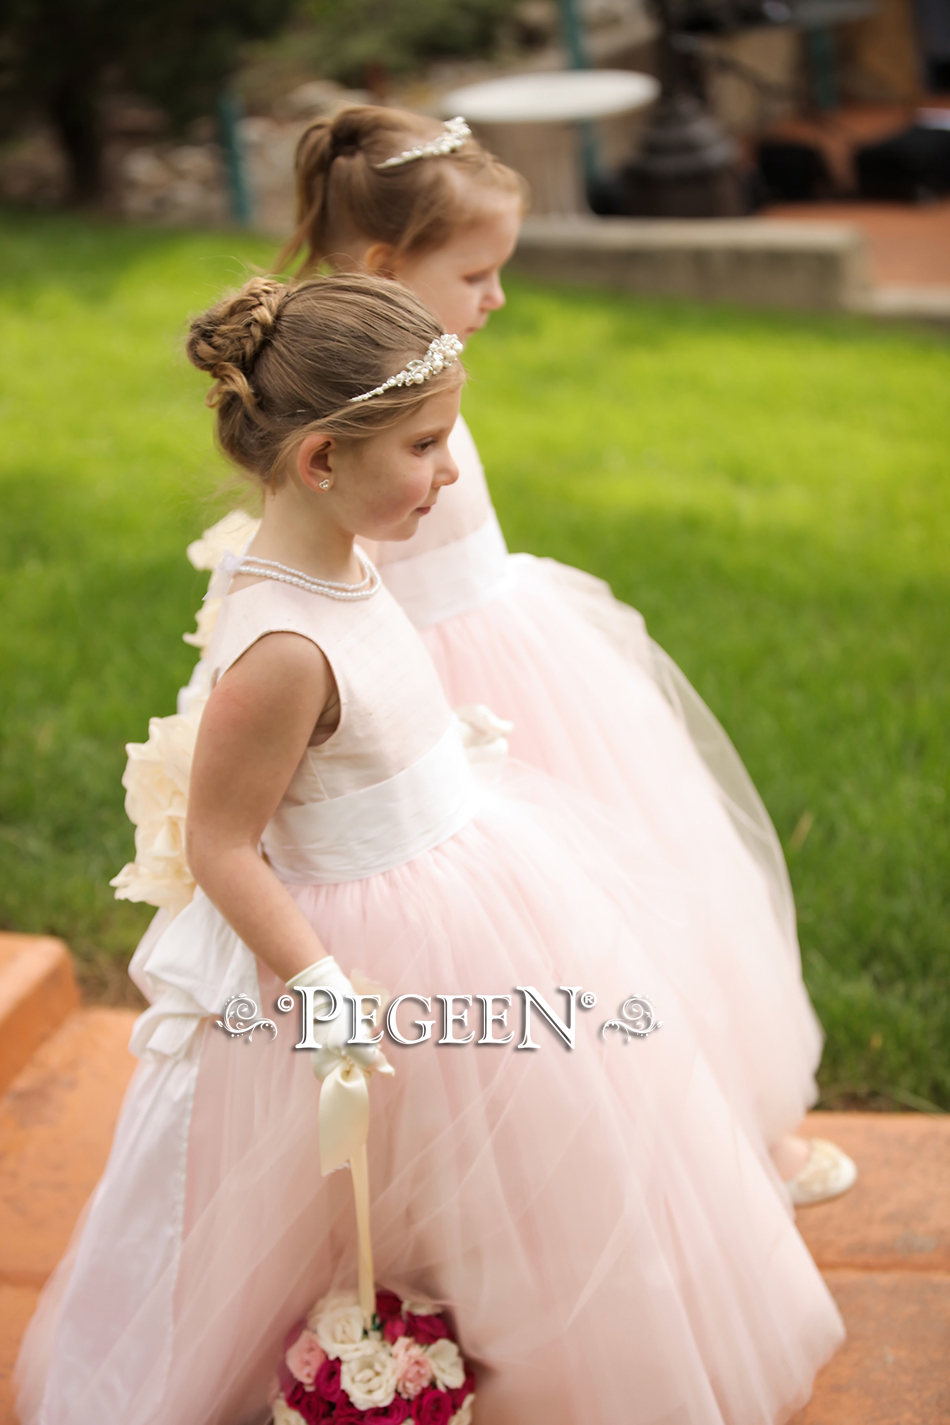 Flower Girl Dress of the Month - June 2017 features a Marie Antoinette Style wedding